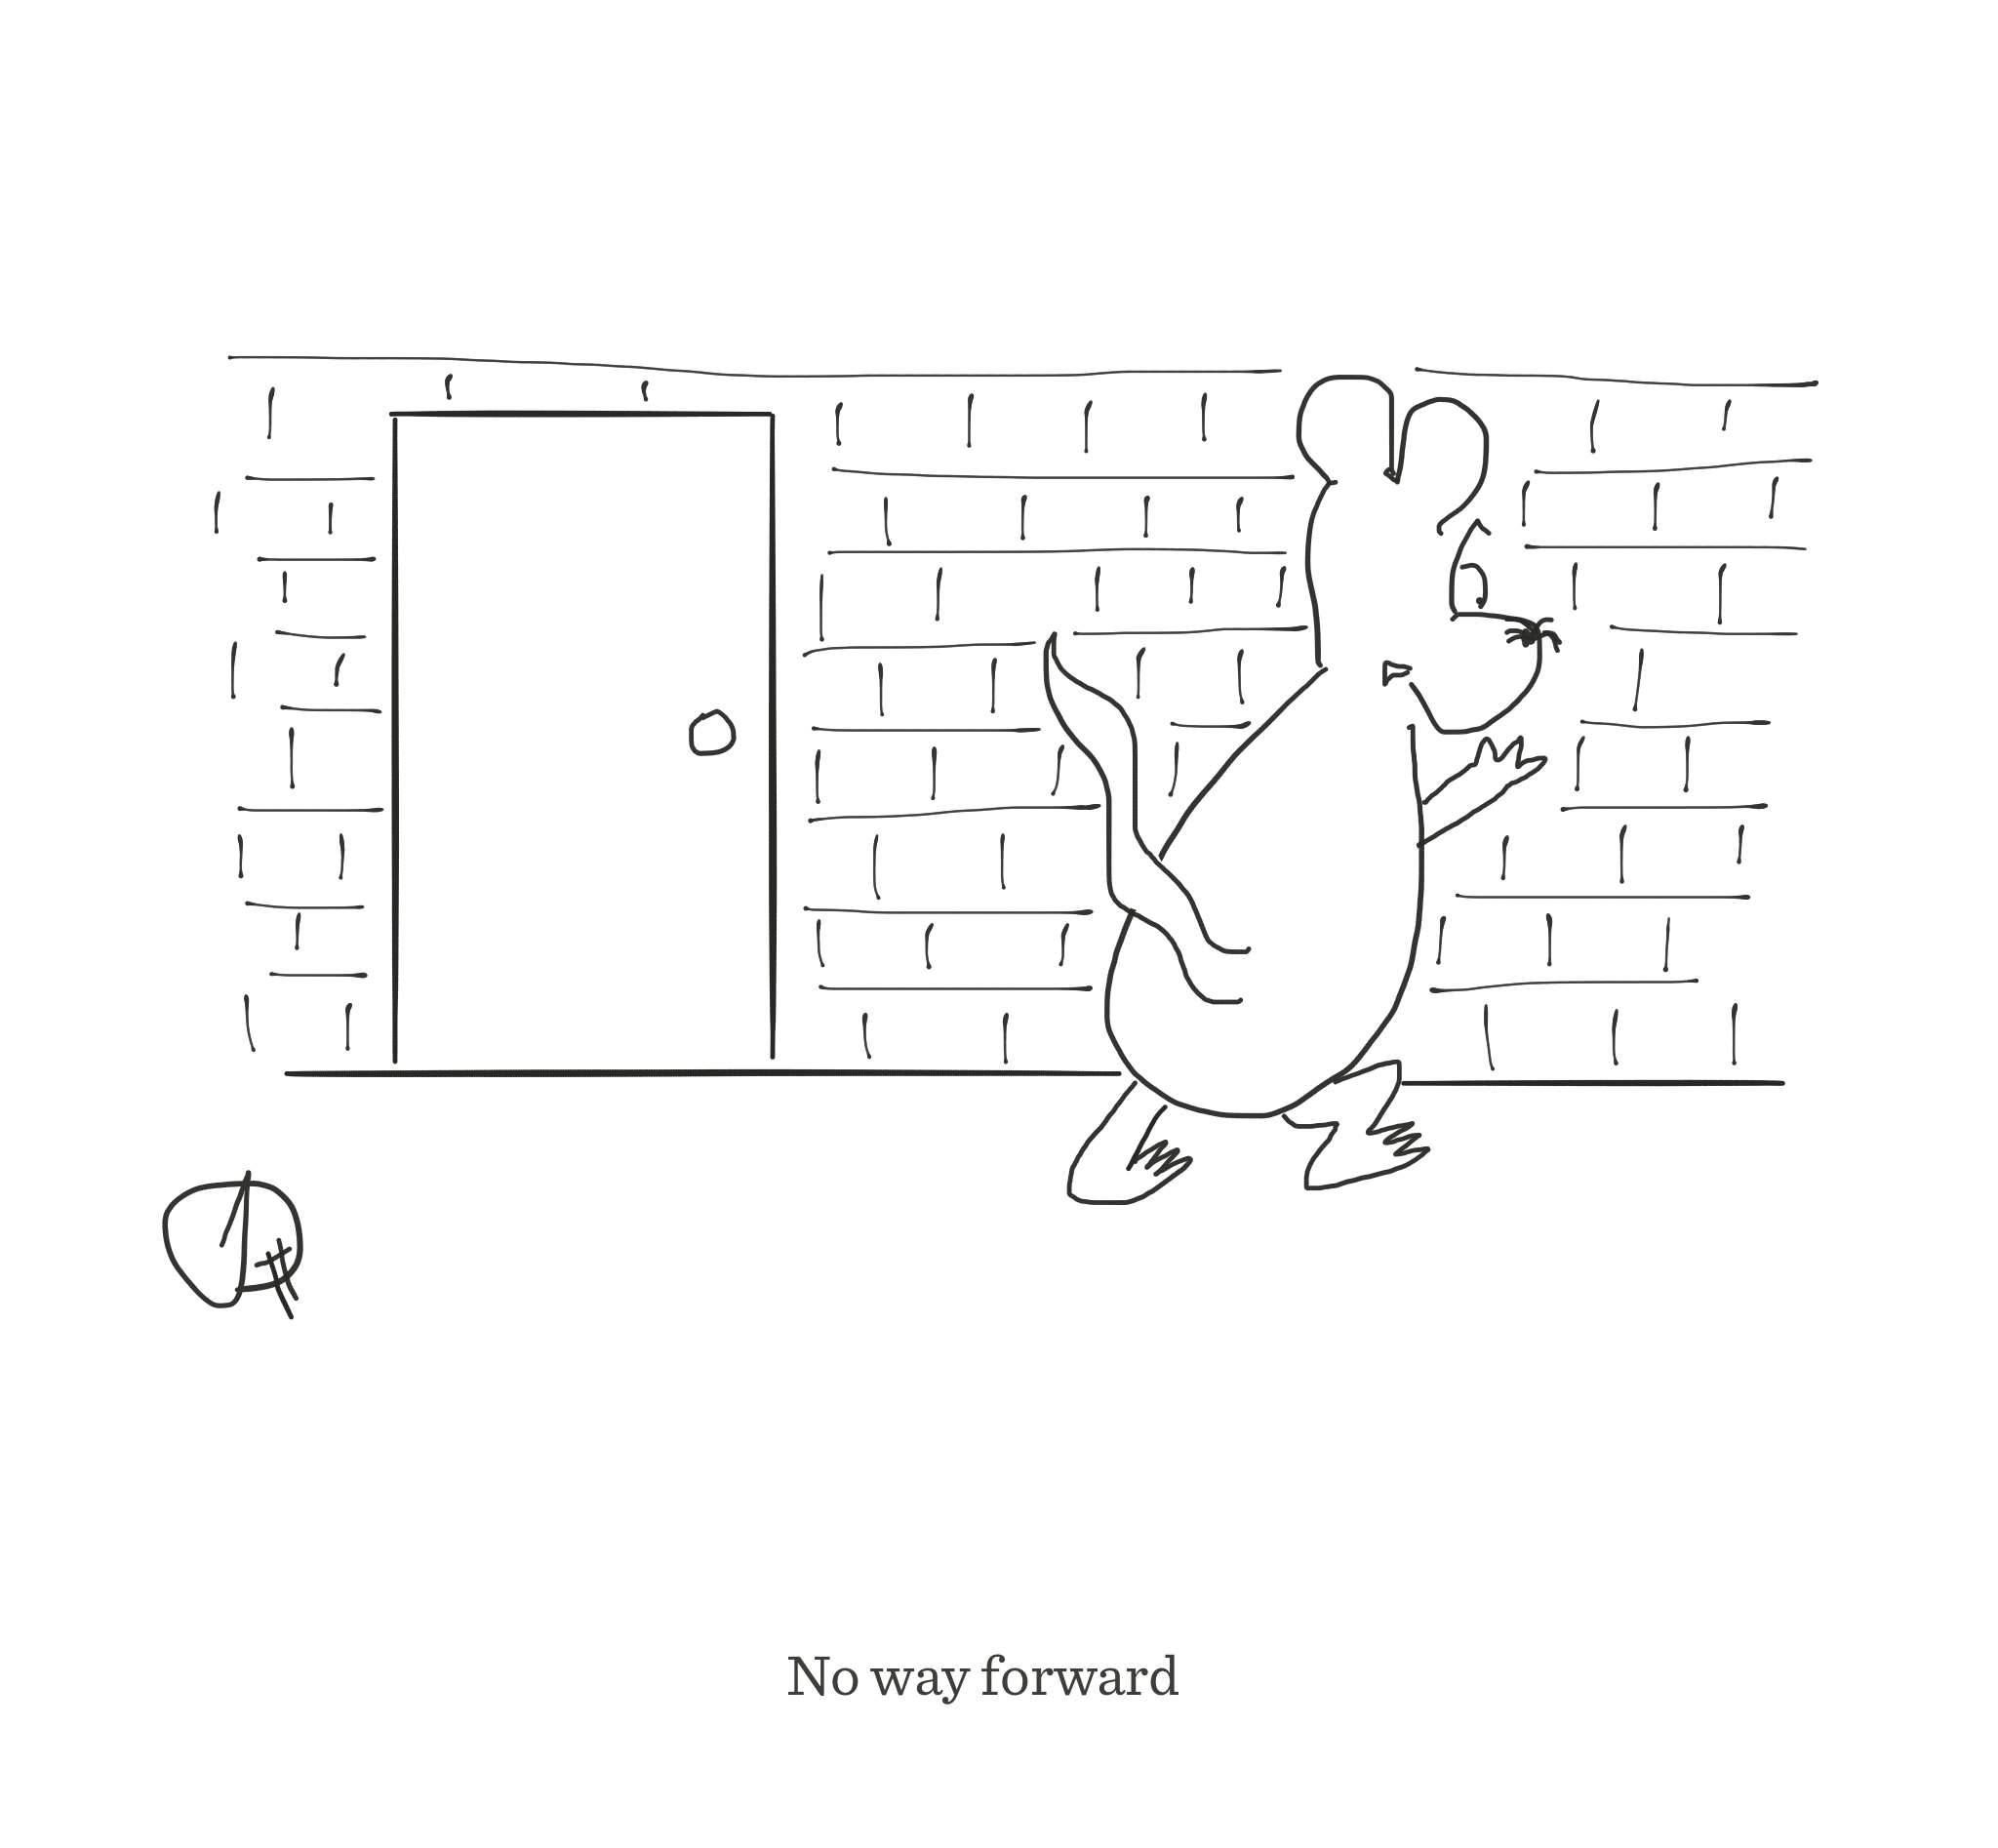 No way forward, The Happy Rat cartoon